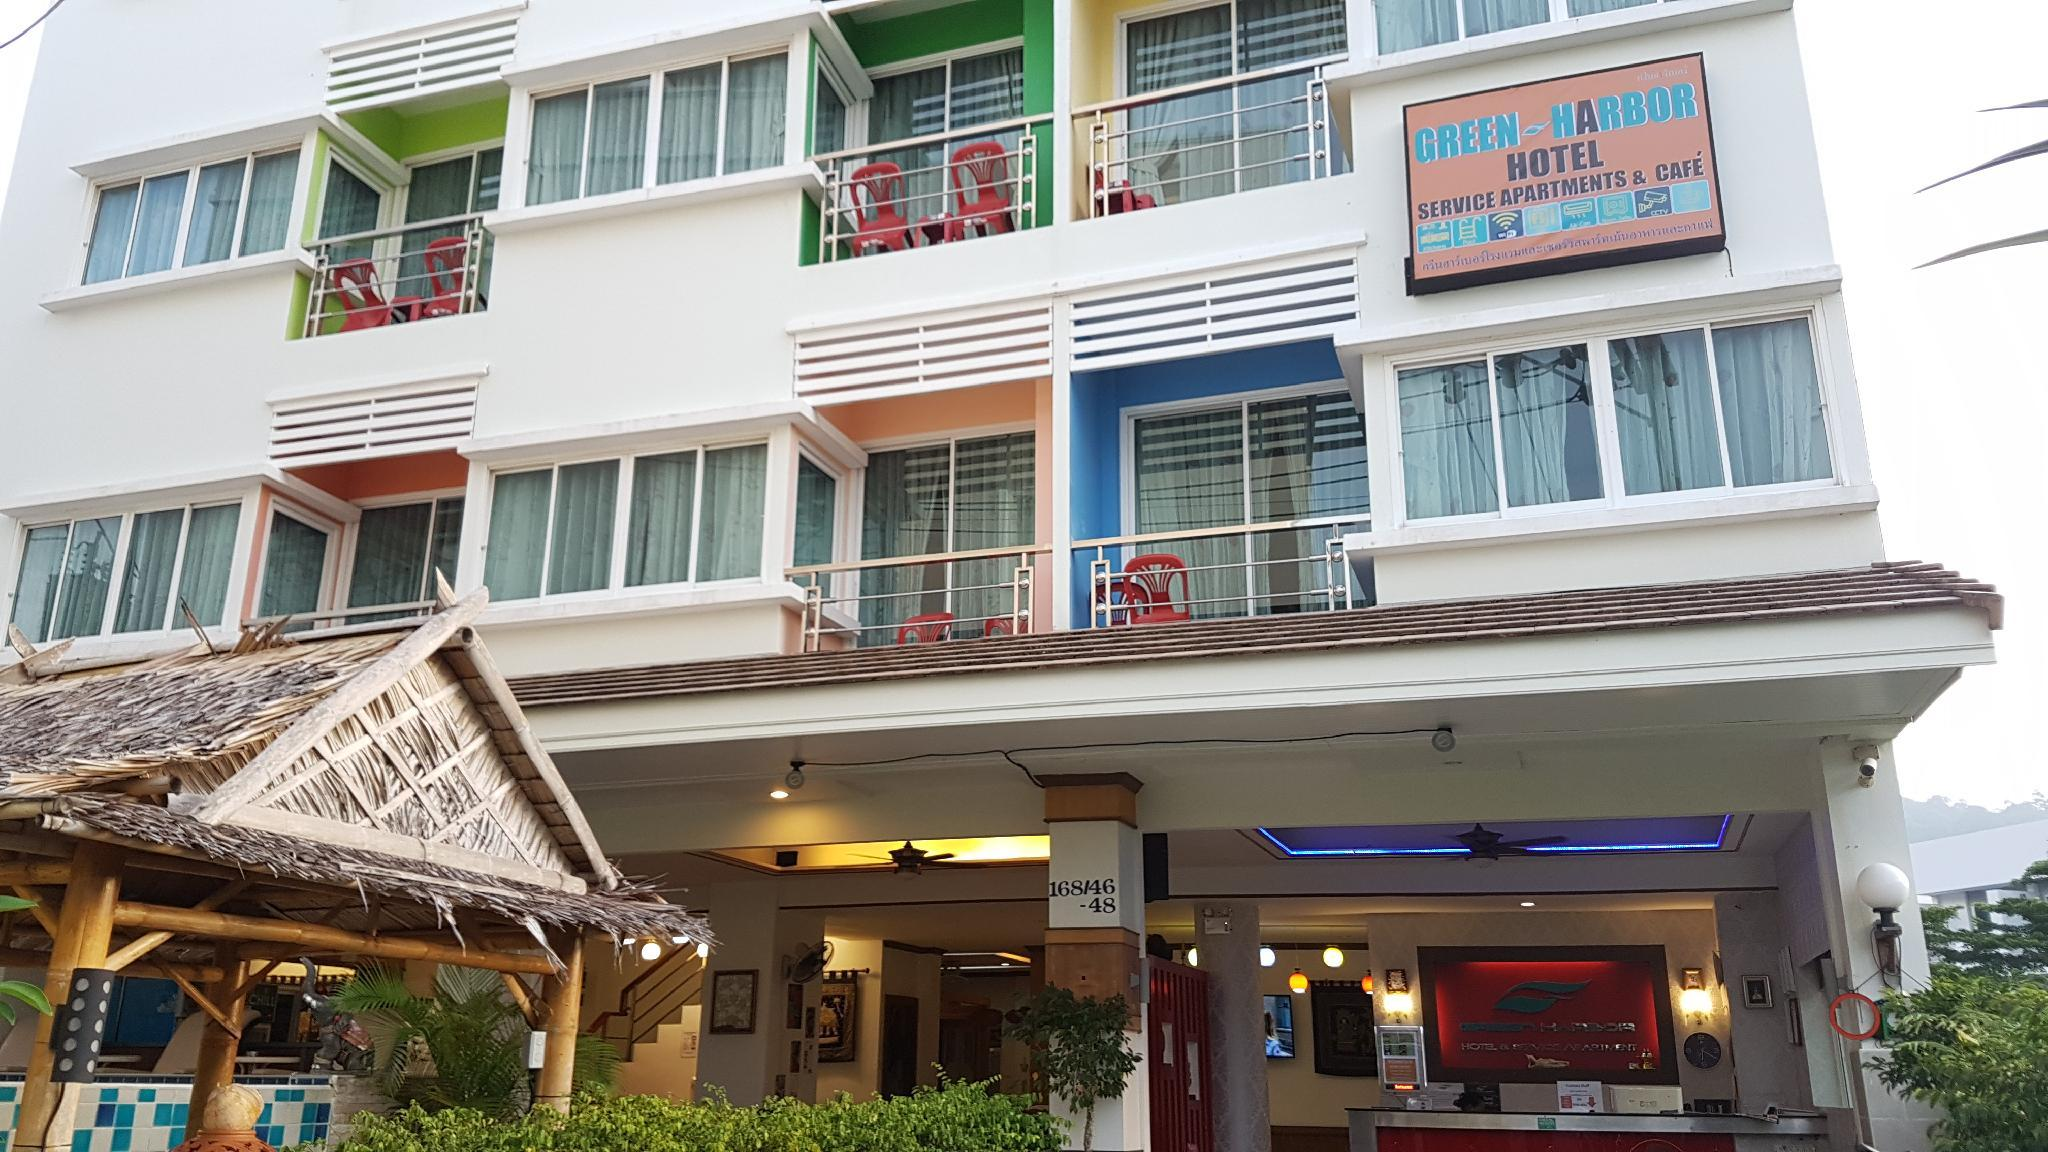 Green Harbor Hotel And Service Apartment